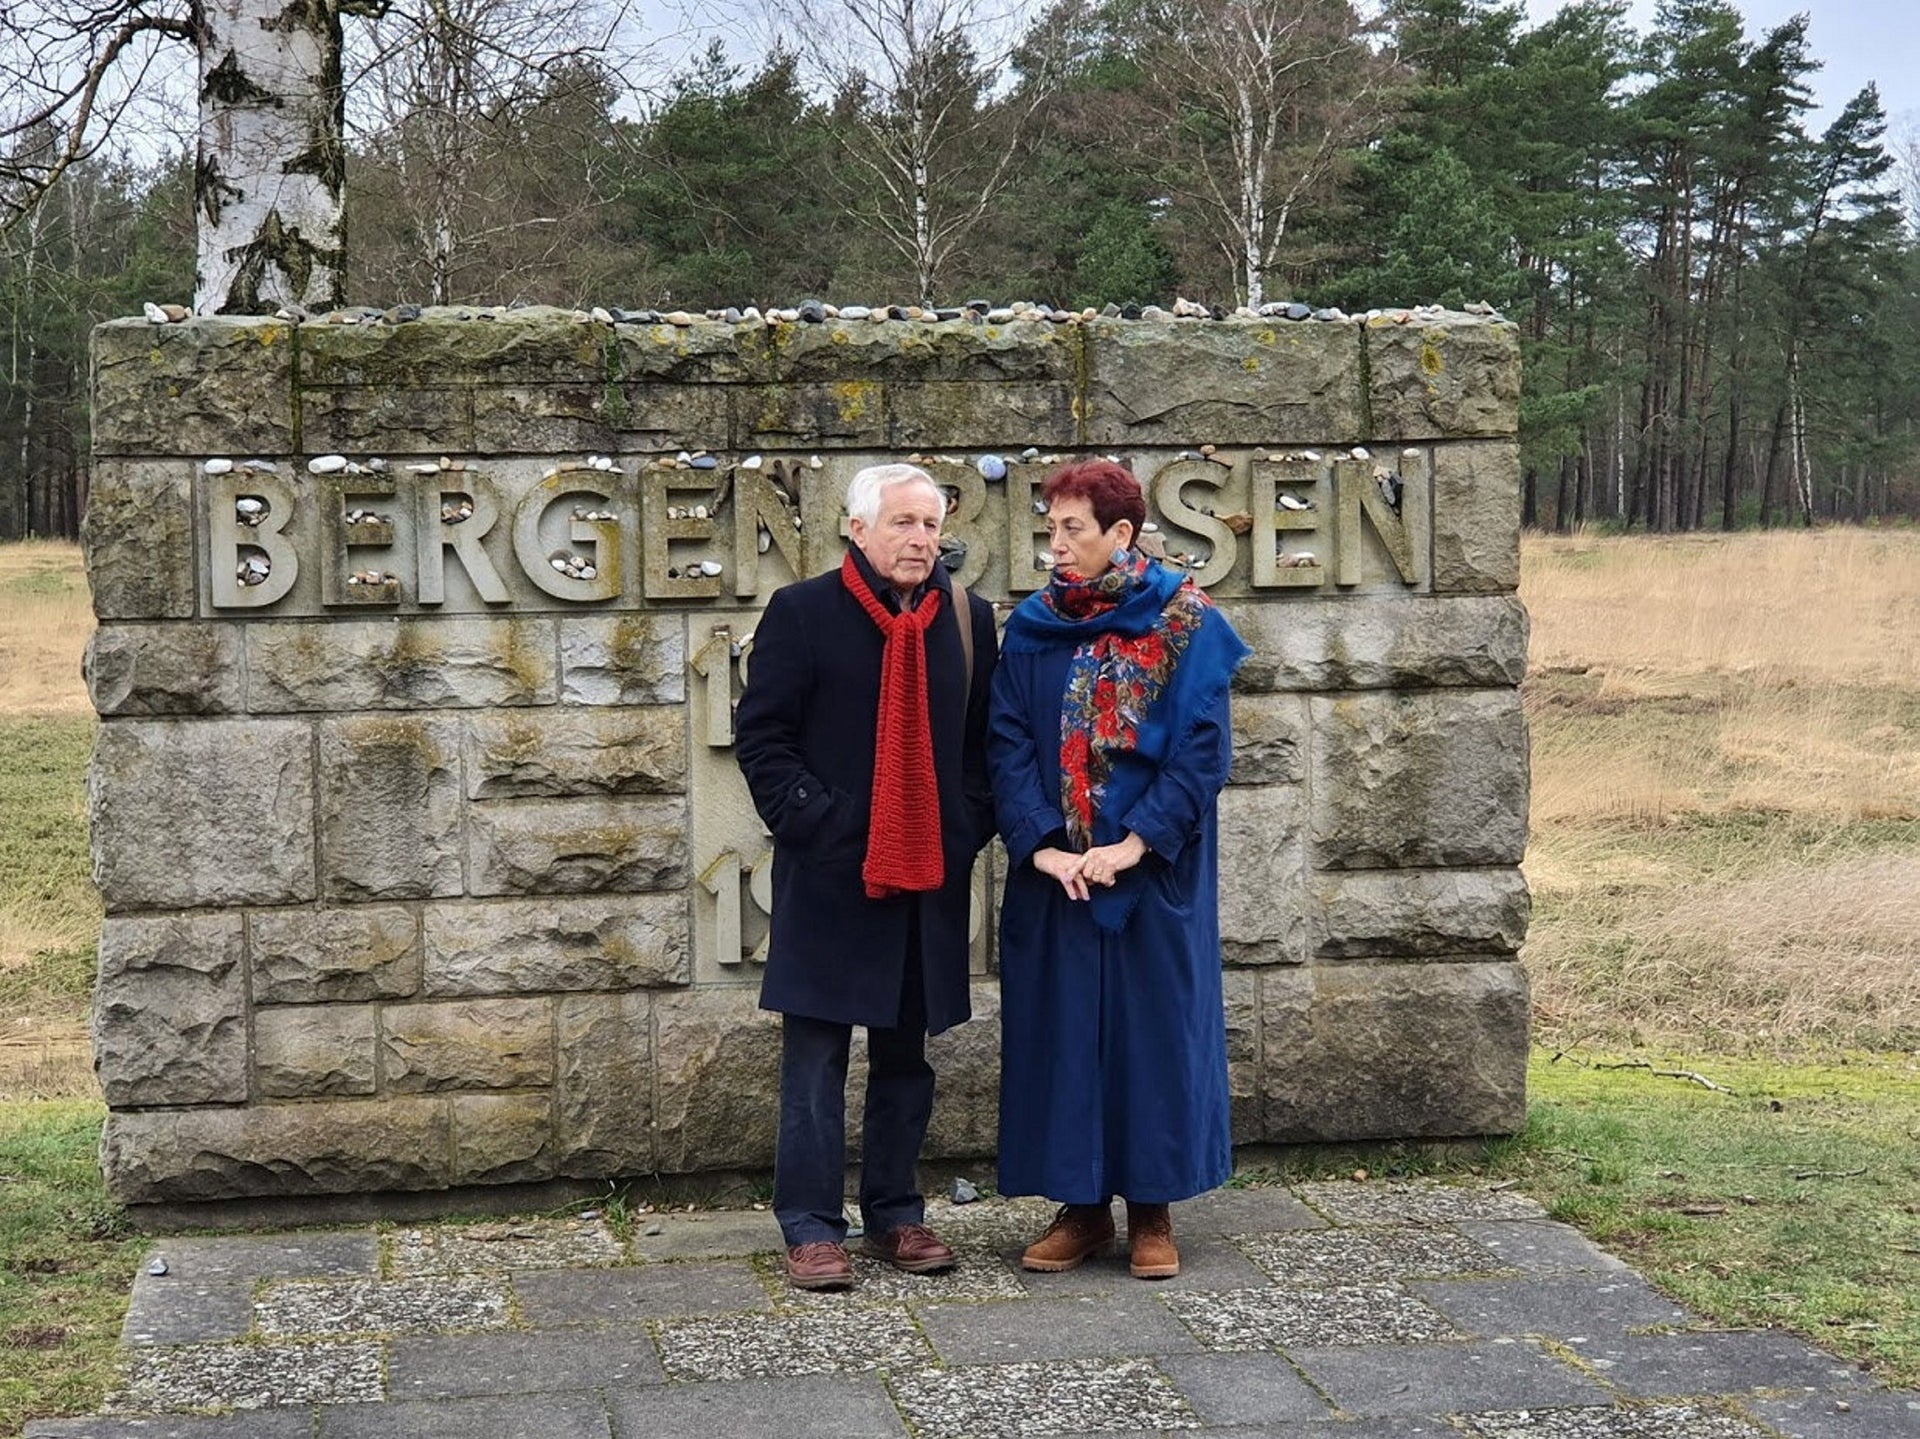 Dimbleby's son, Jonathan Dimbleby, next to my mother and Tzipora Singer's daughter, Liora Danieli, during our visit to Bergen-Belsen this year.